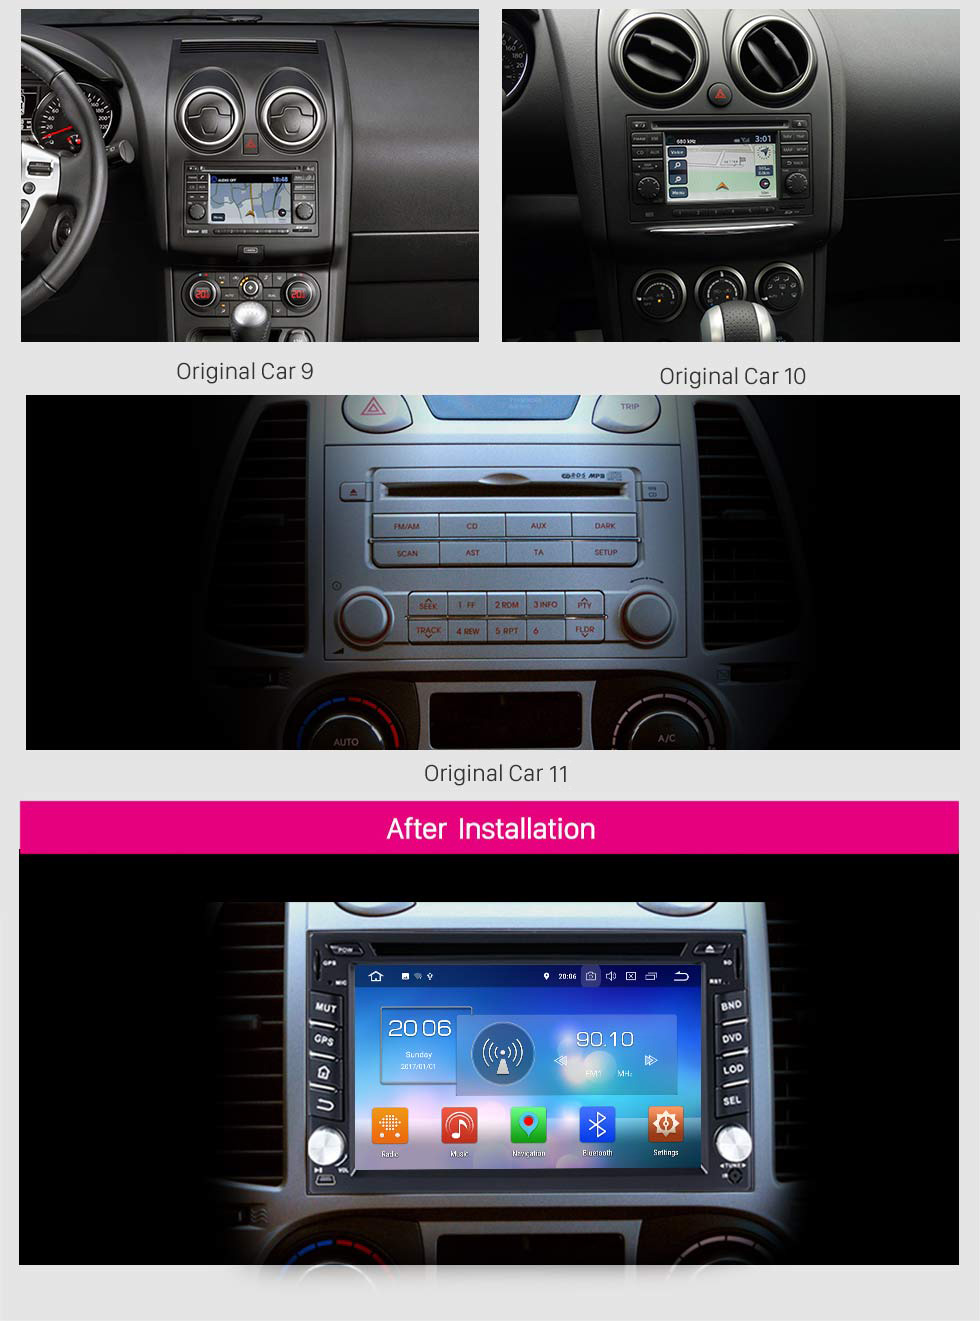 Seicane 2005-2009 Nissan Teana  Android 8.0 DVD Player GPS navigation system Bluetooth Radio HD Touch Screen Mirror link OBD2 DVR TV 3G WIFI USB SD Rearview Camera 1080P Video